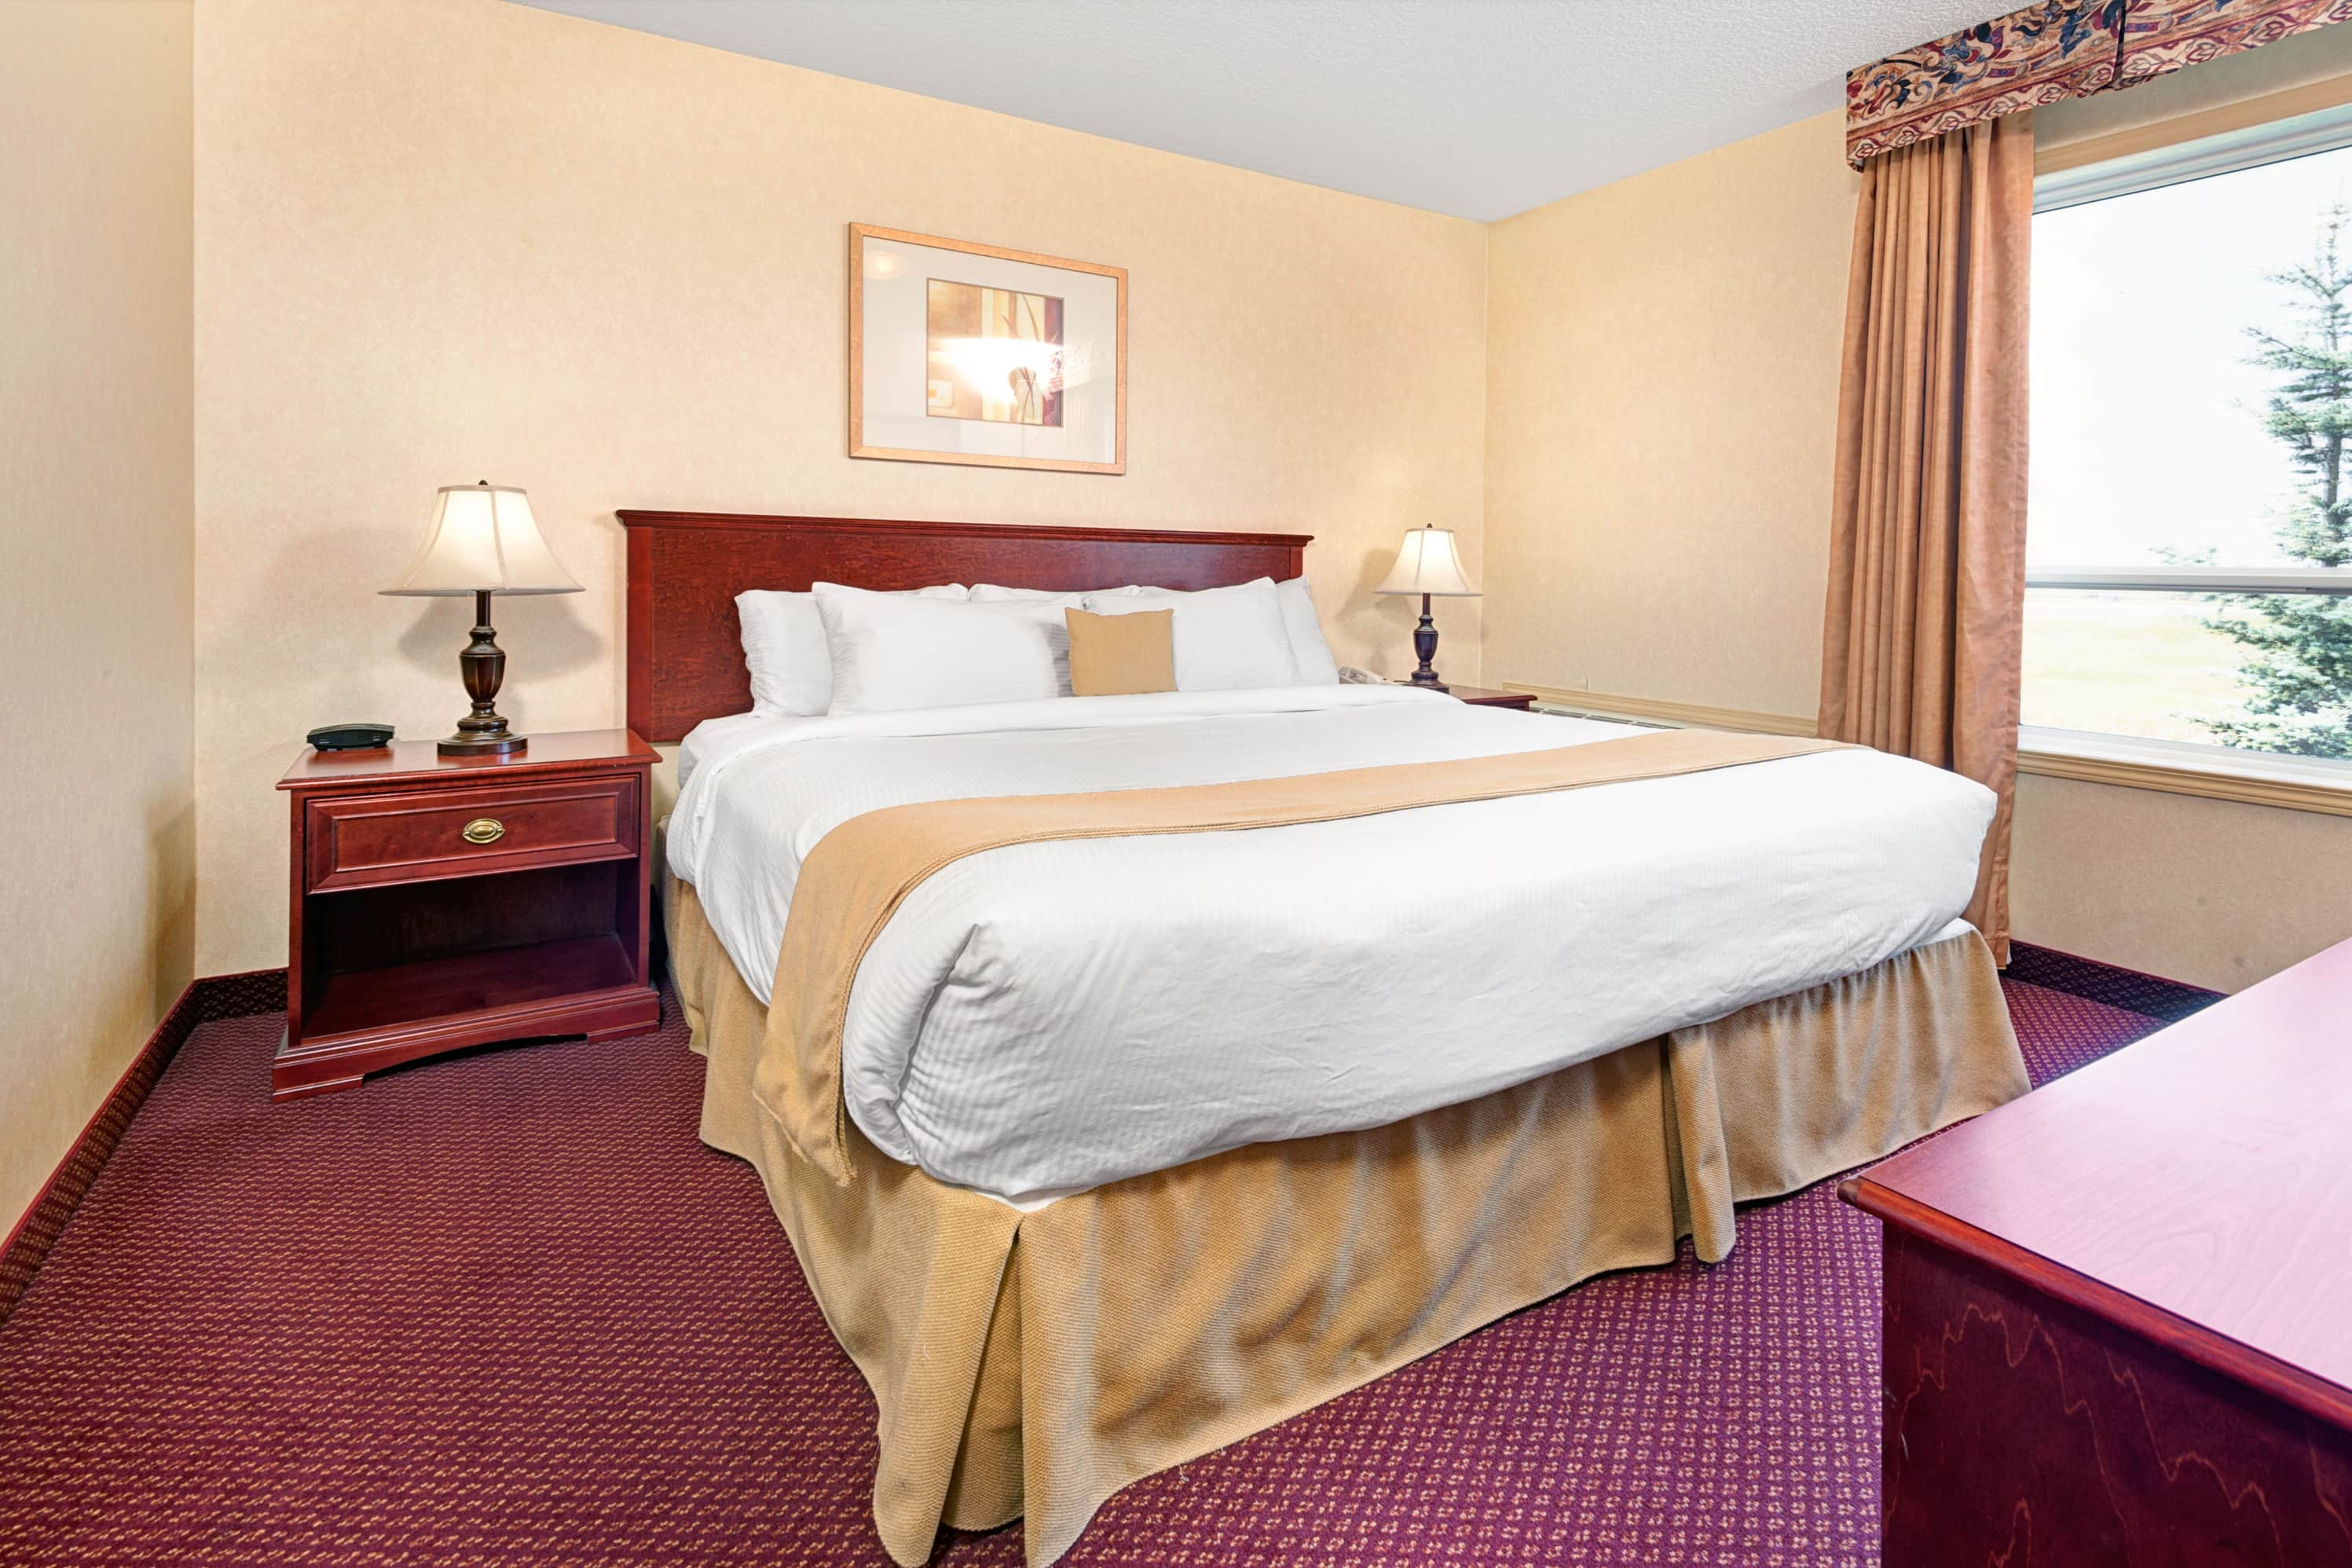 Ramada Edmonton International Airport suite in Leduc, Alberta